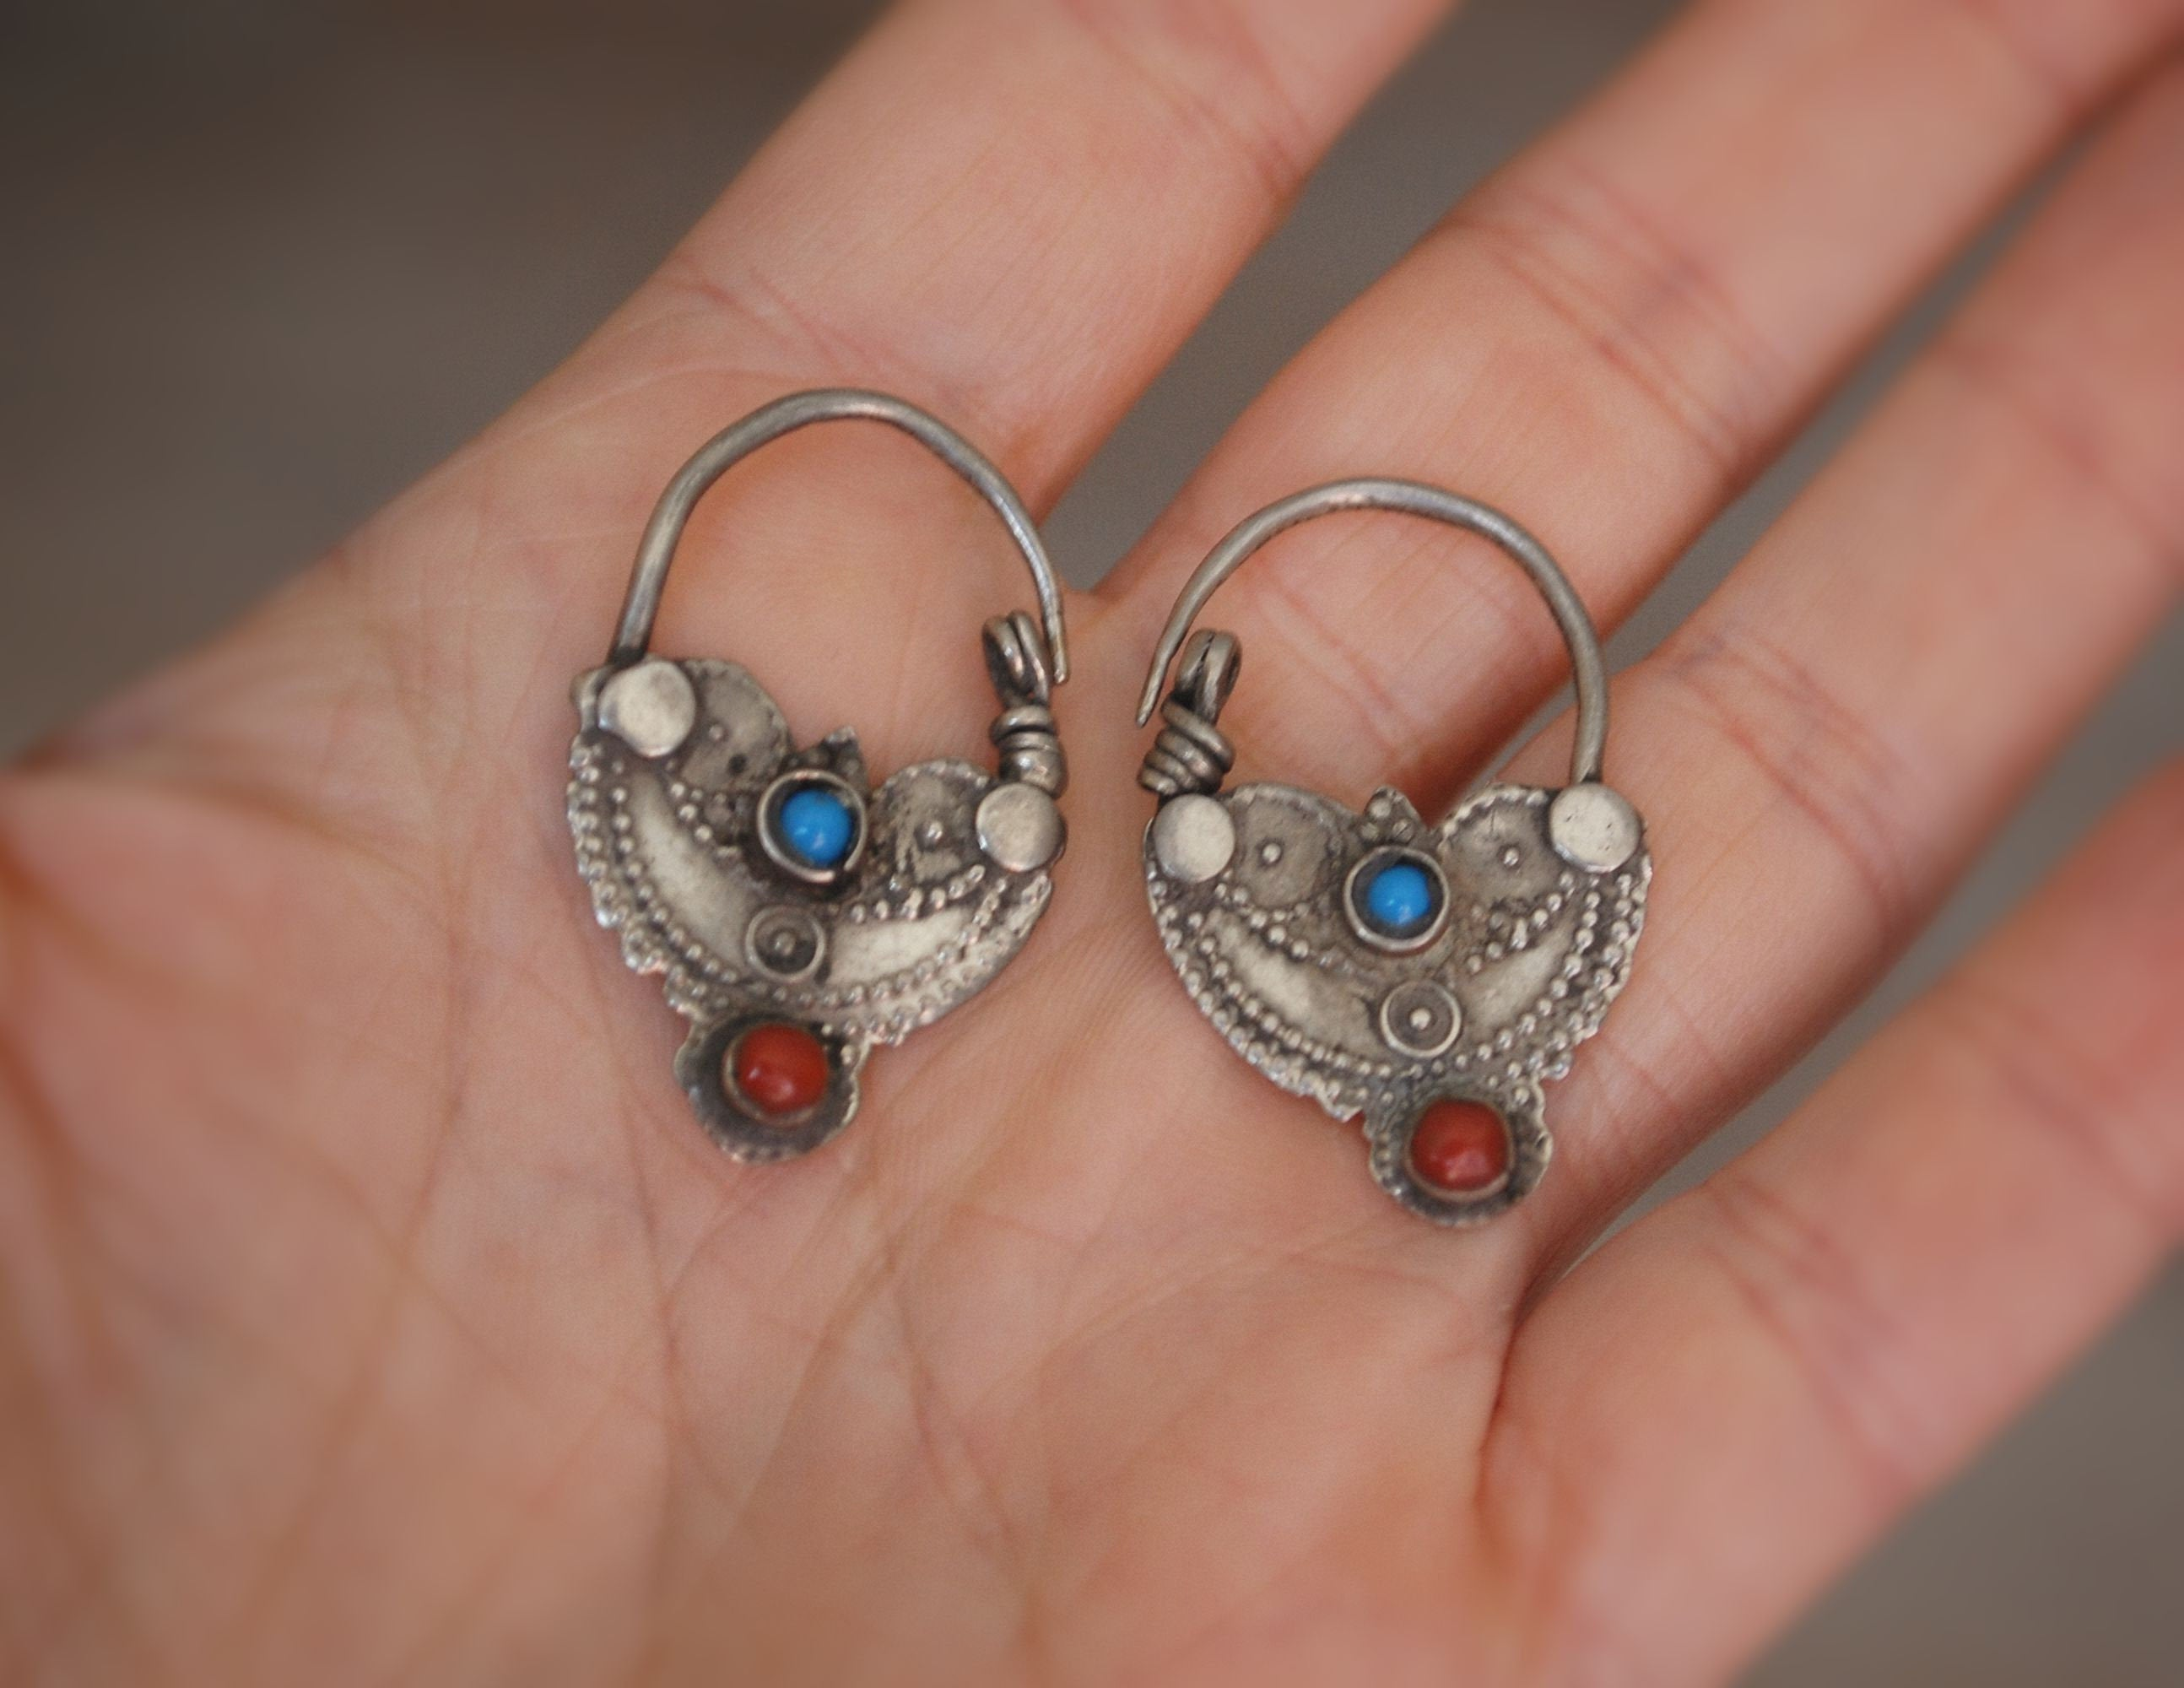 Antique Afghani Hoop Earrings with Turquoise and Coral - Tribal Hoop Earrings - Afghani Jewelry - Ethnic Hoop Earrings - Tribal Earrings